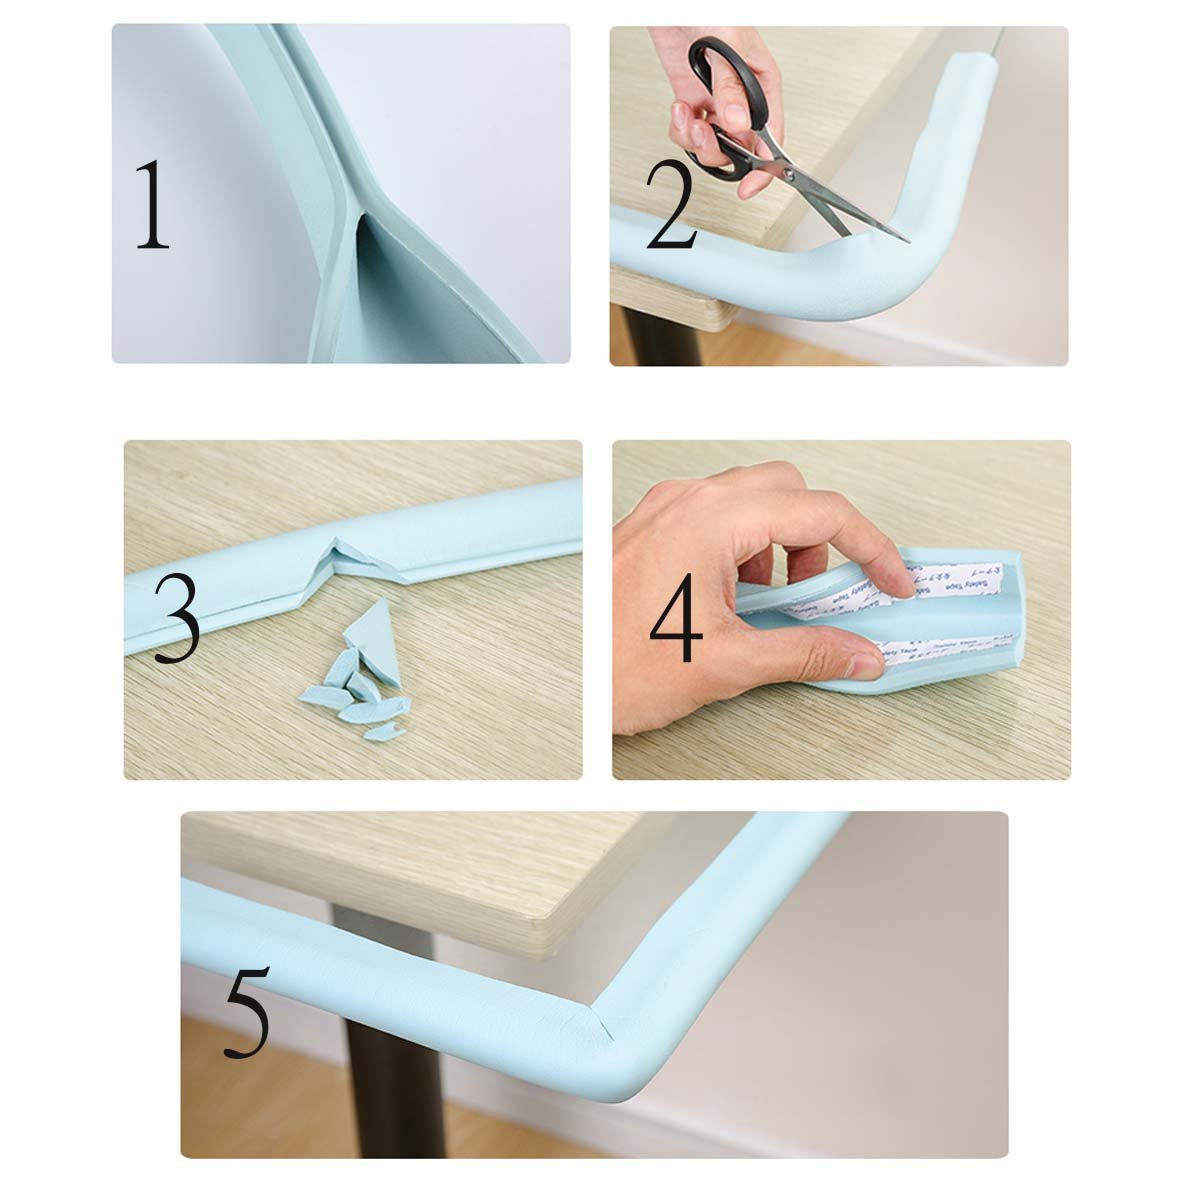 Ancdream 2M U-Shaped Thicken Baby Safety Table Edge Corner Protector Guard Cushion Anti-collision Bumper Strip